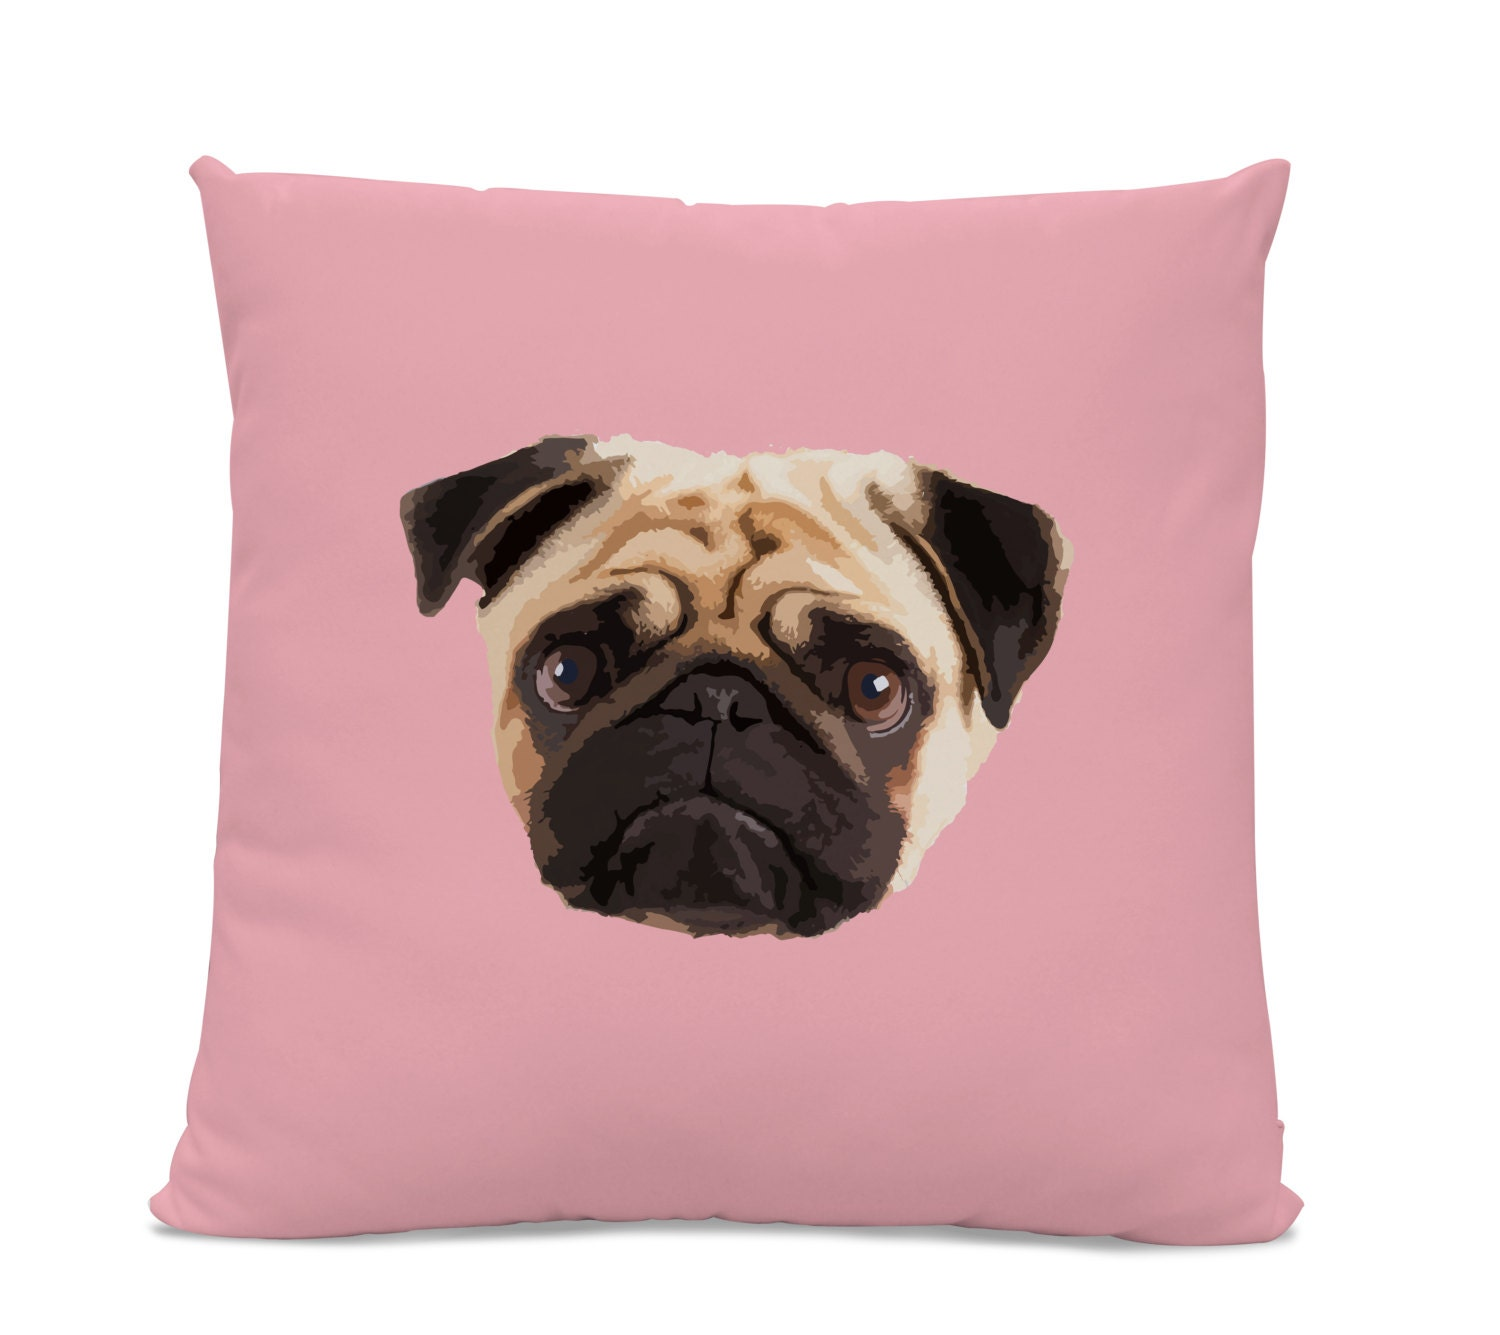 Pug Face Pillow Pug Home Decor Living Room Dog Pillow Dog